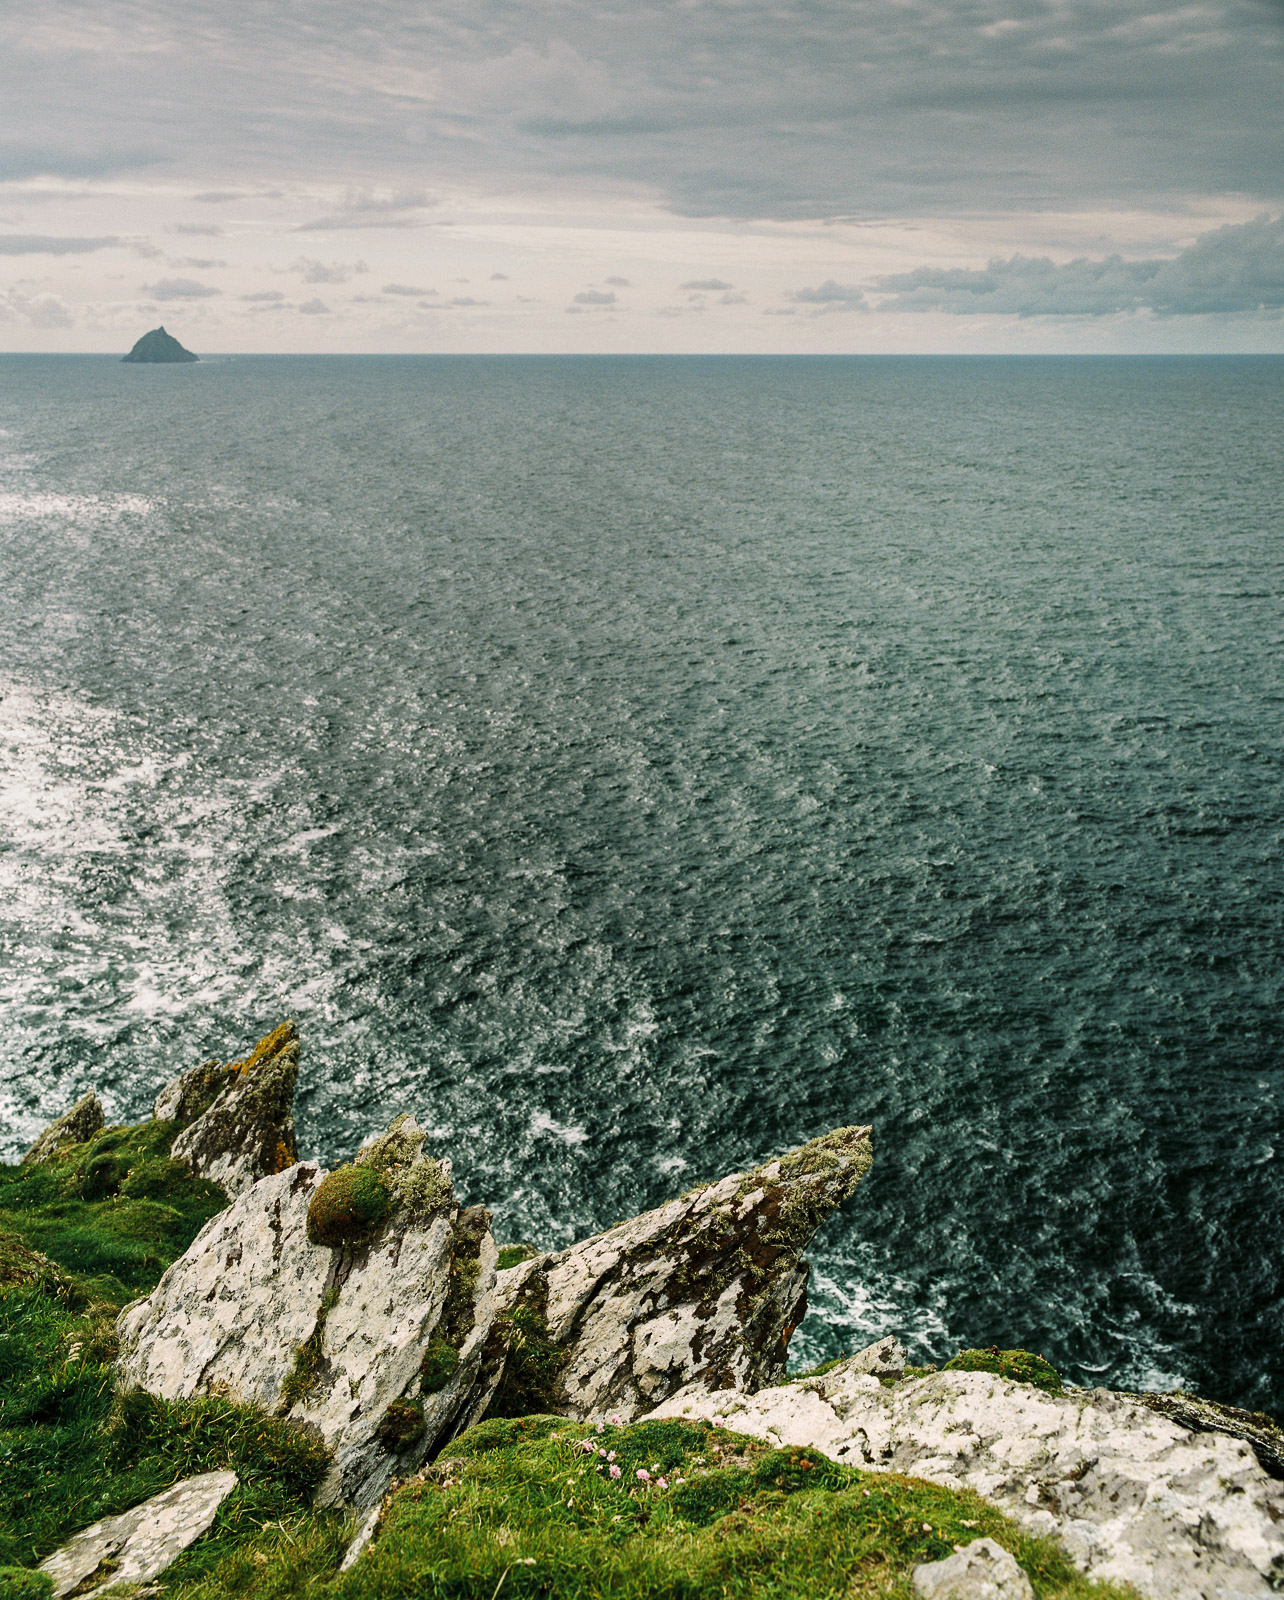 View from the Blasket Islands, County Kerry, Republic of Ireland. ©Laurence Gibson